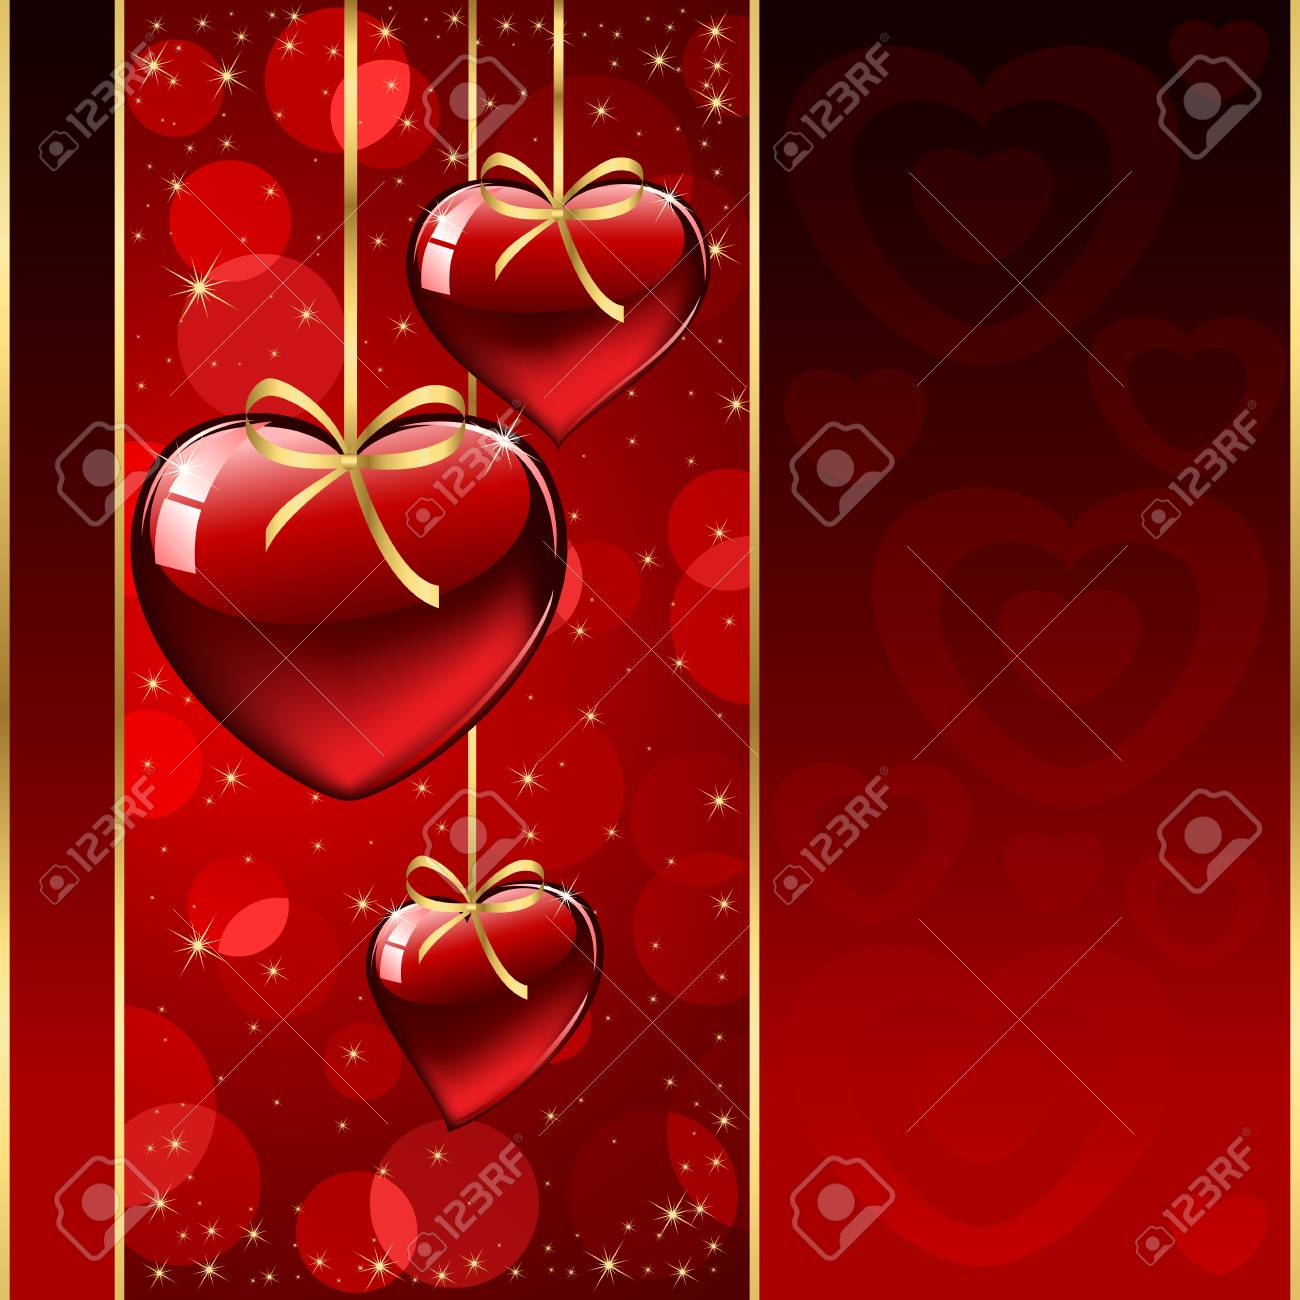 Background with red Hearts, illustration Stock Vector - 8487415